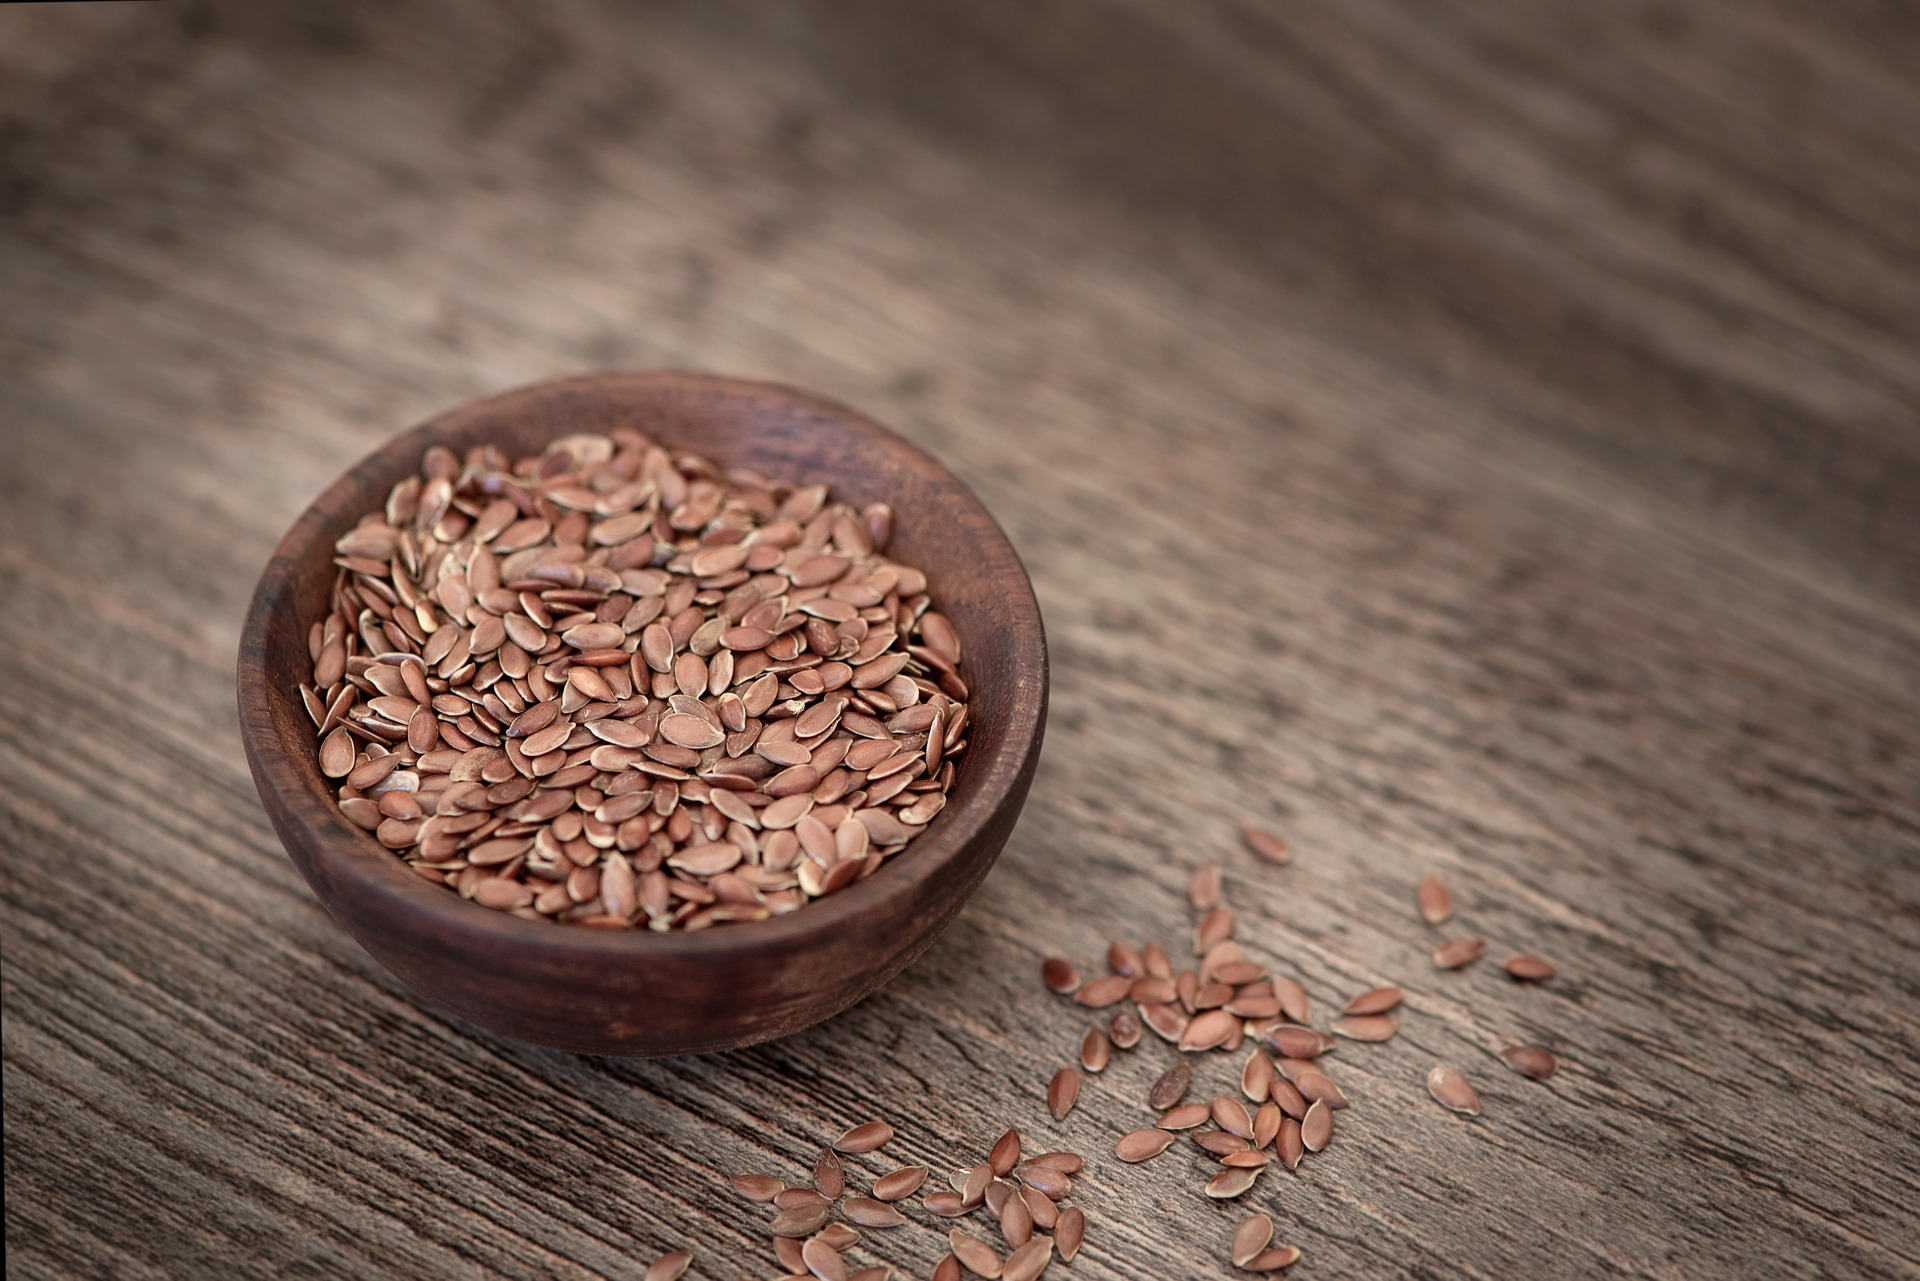 Flaxseed benefits revealed – the common superfood